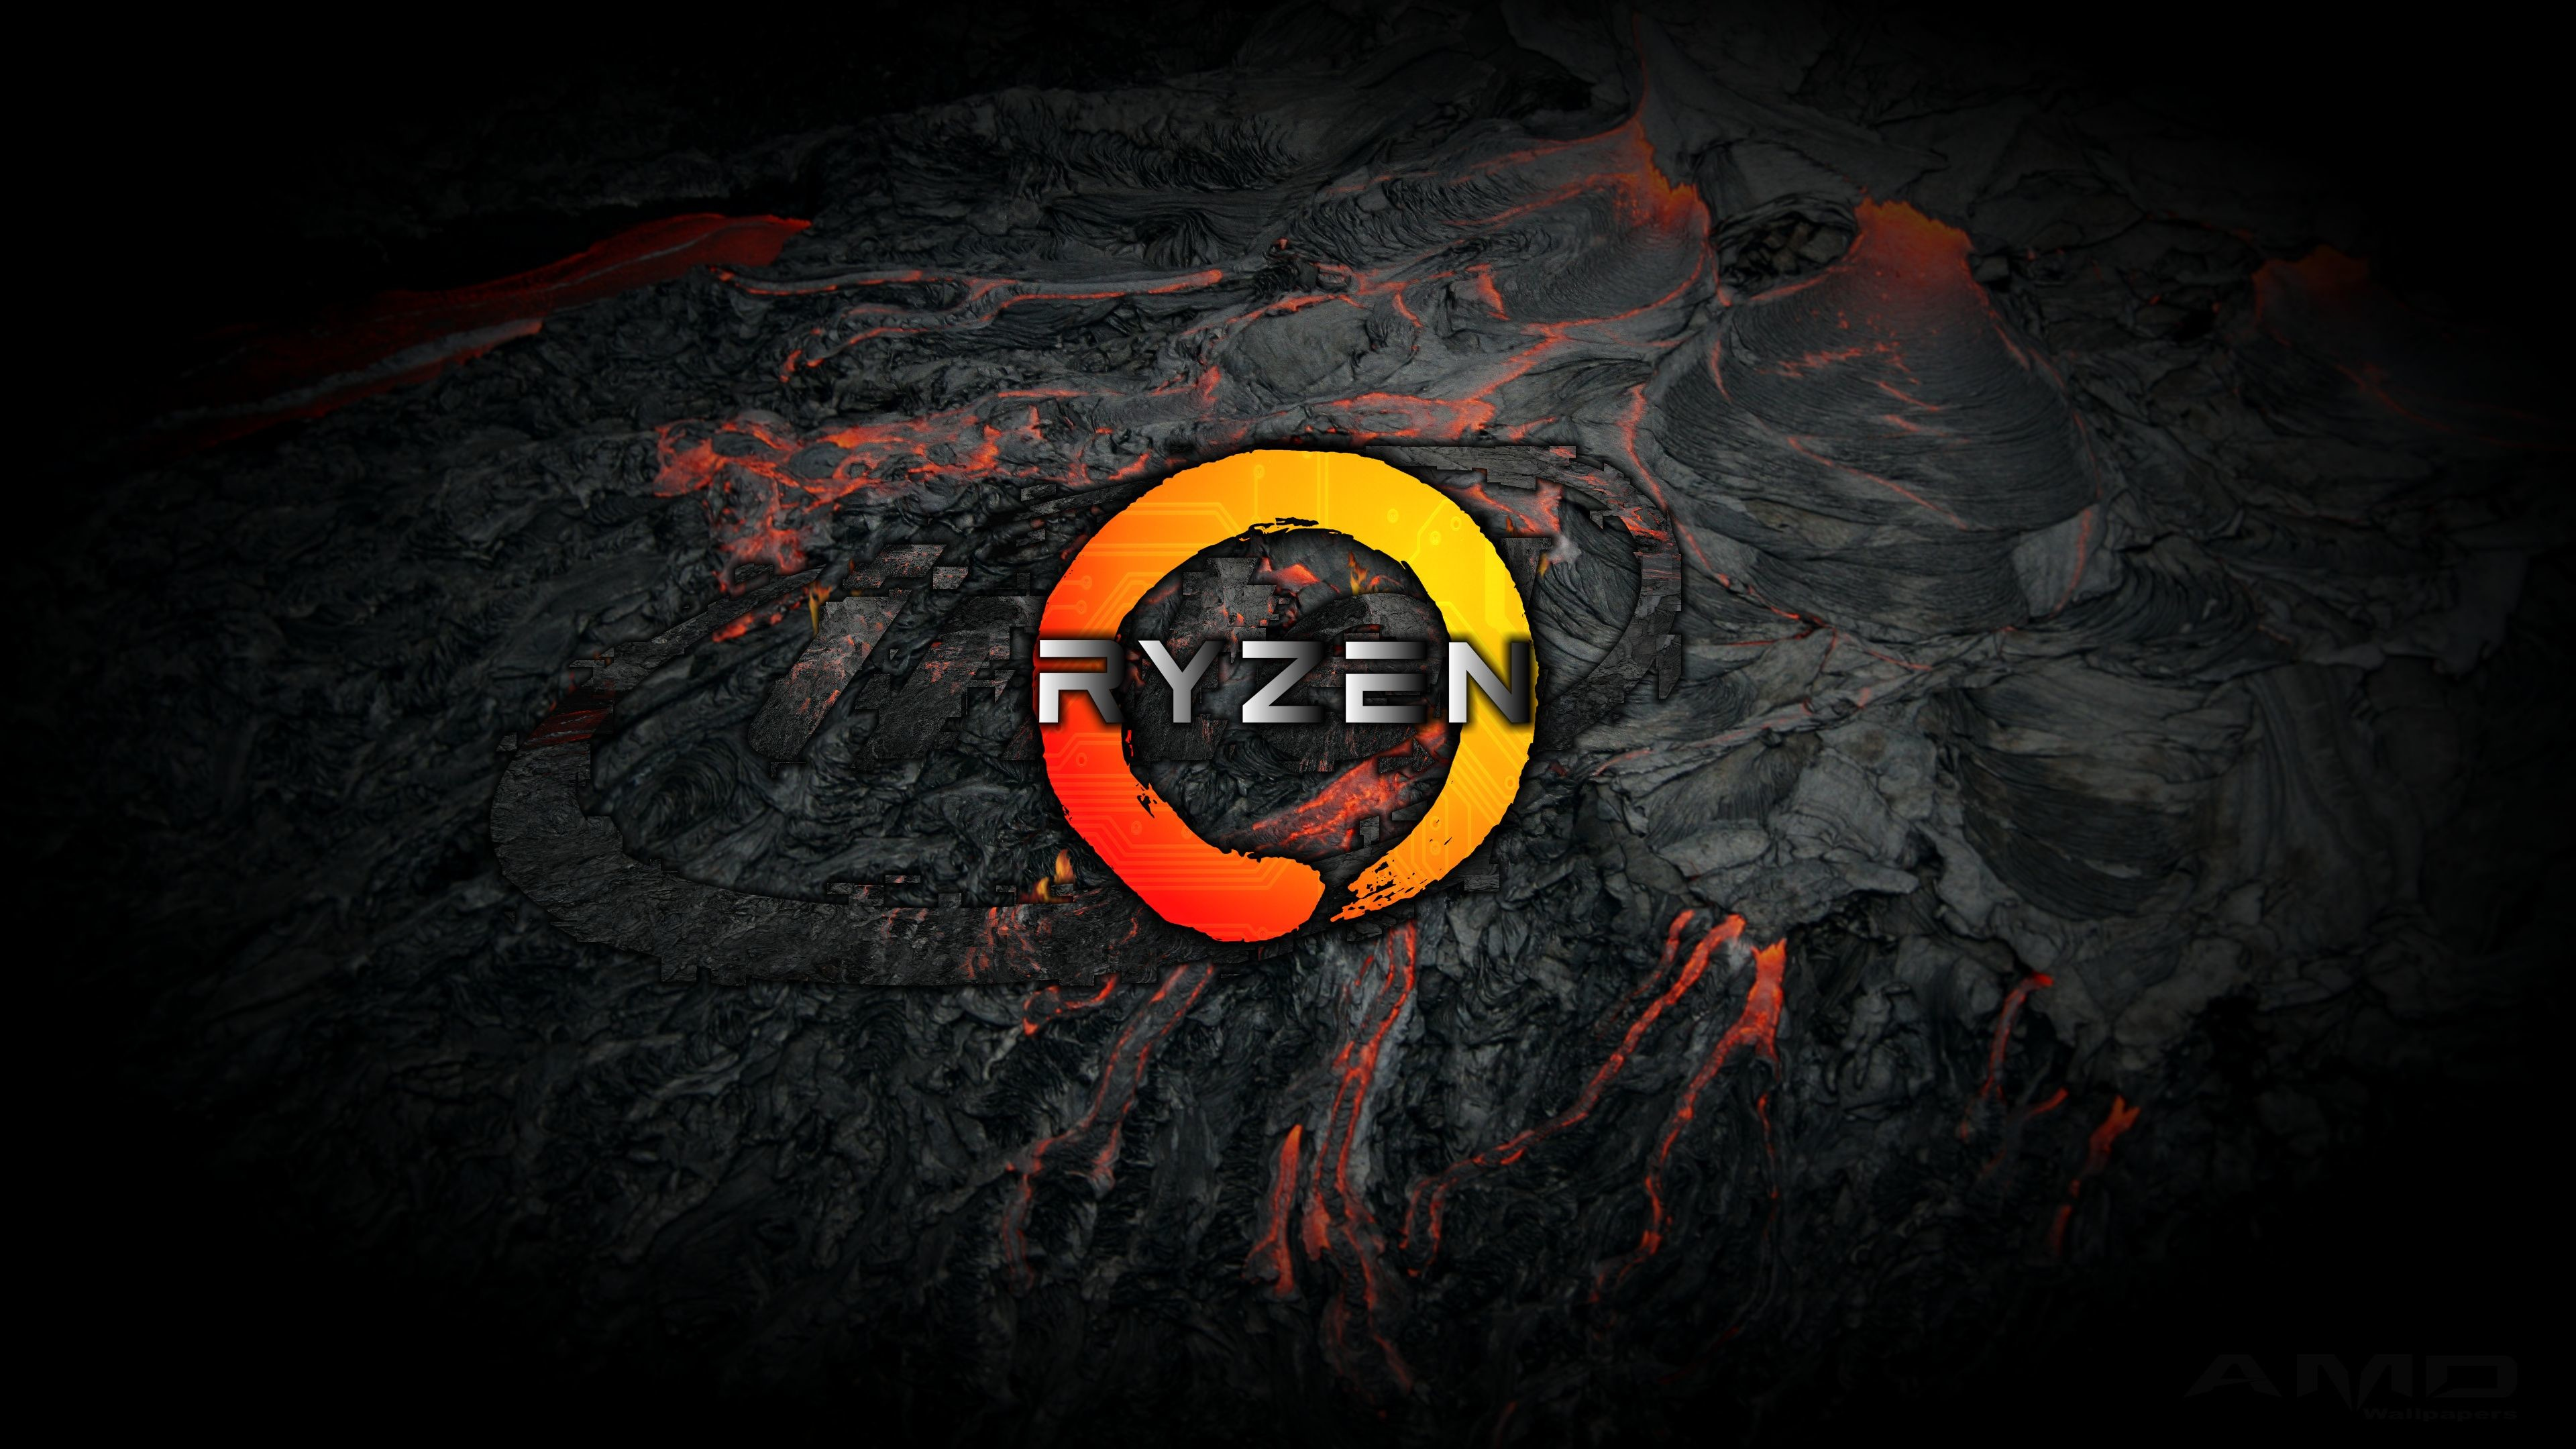 Res: 3840x2160, AMD Wallpapers - 4K HD AMD Ryzen magma wallpaper background -